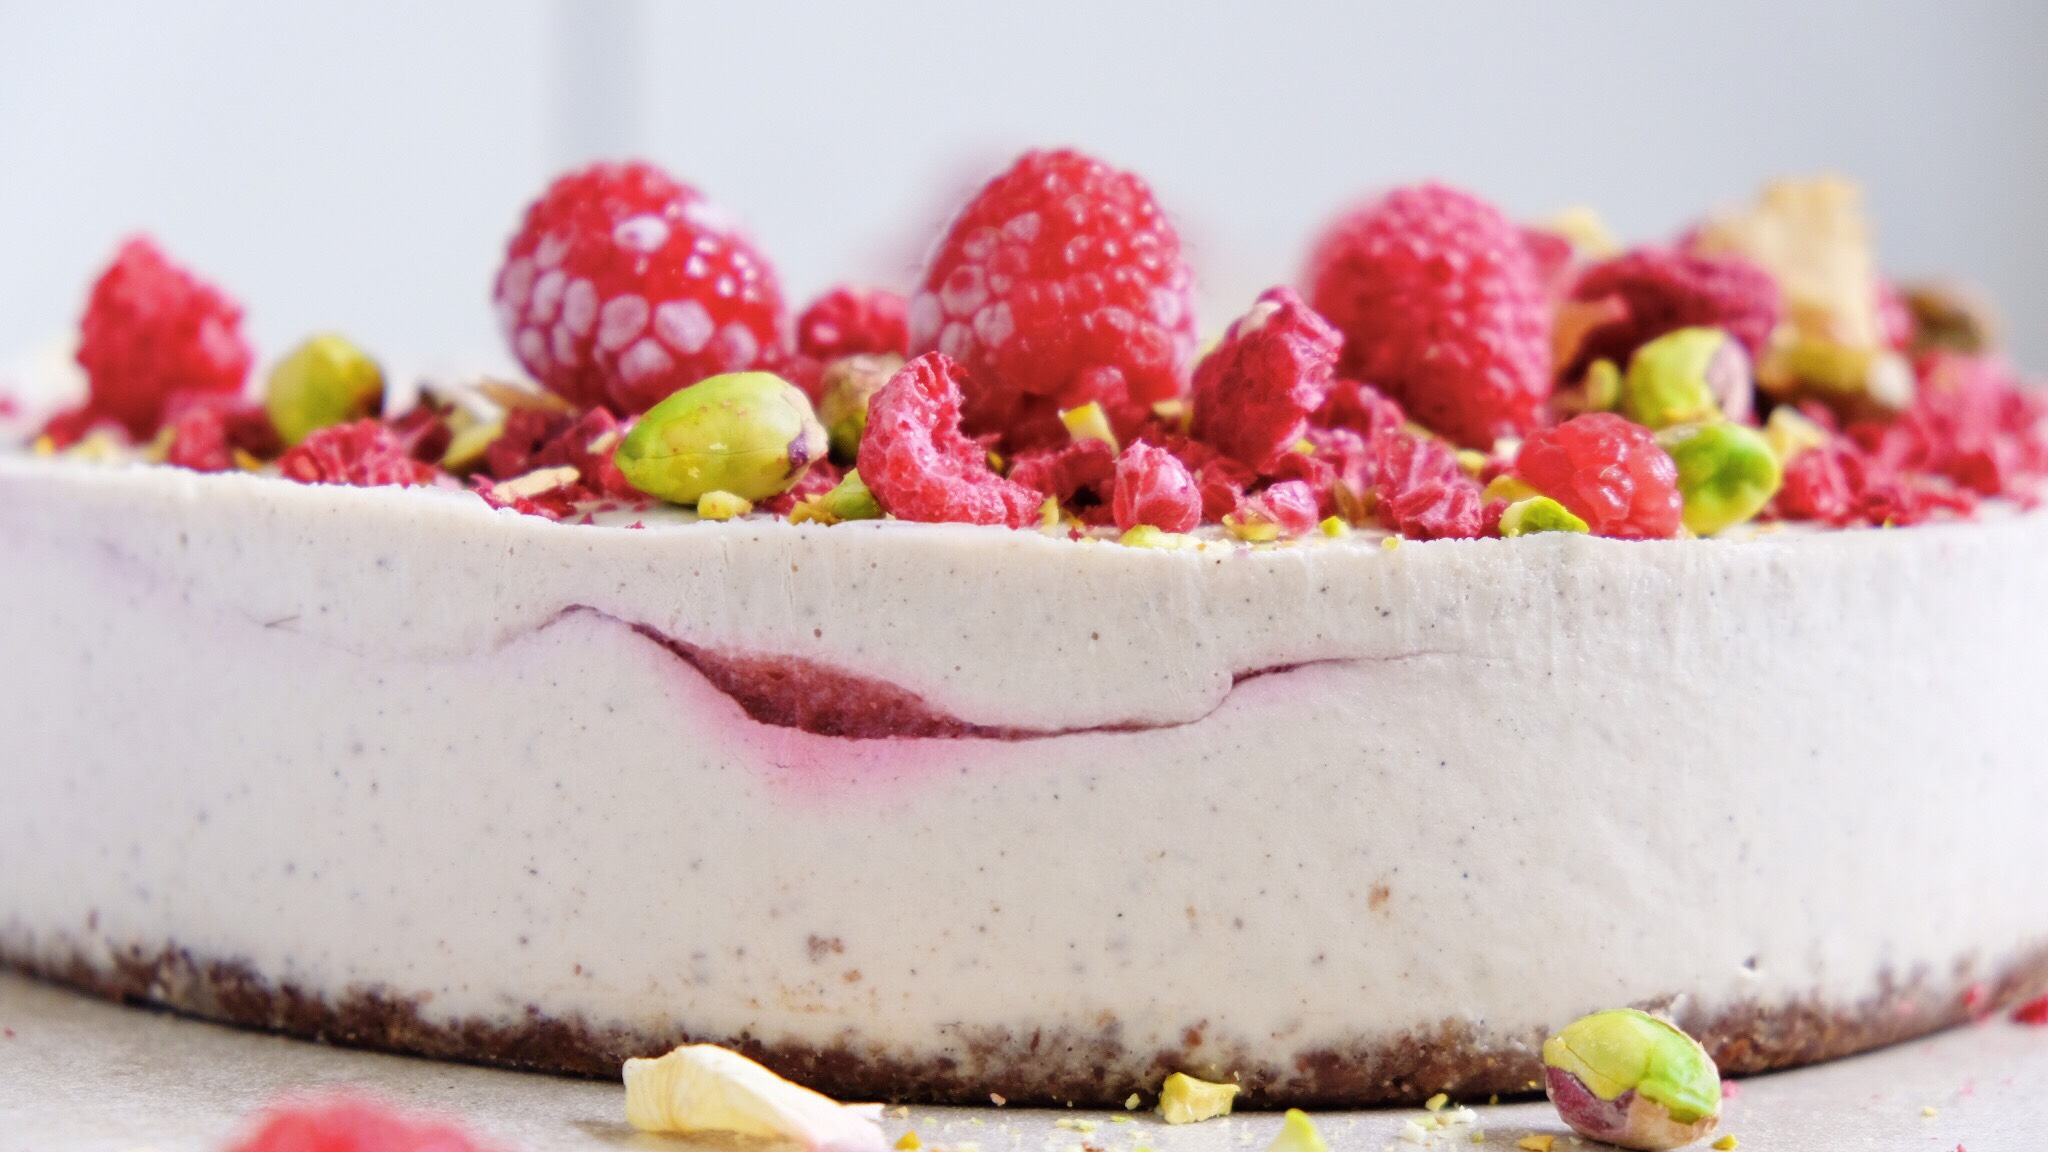 RASPBERRY & COCONUT SWIRL VEGAN CHEESE CAKE